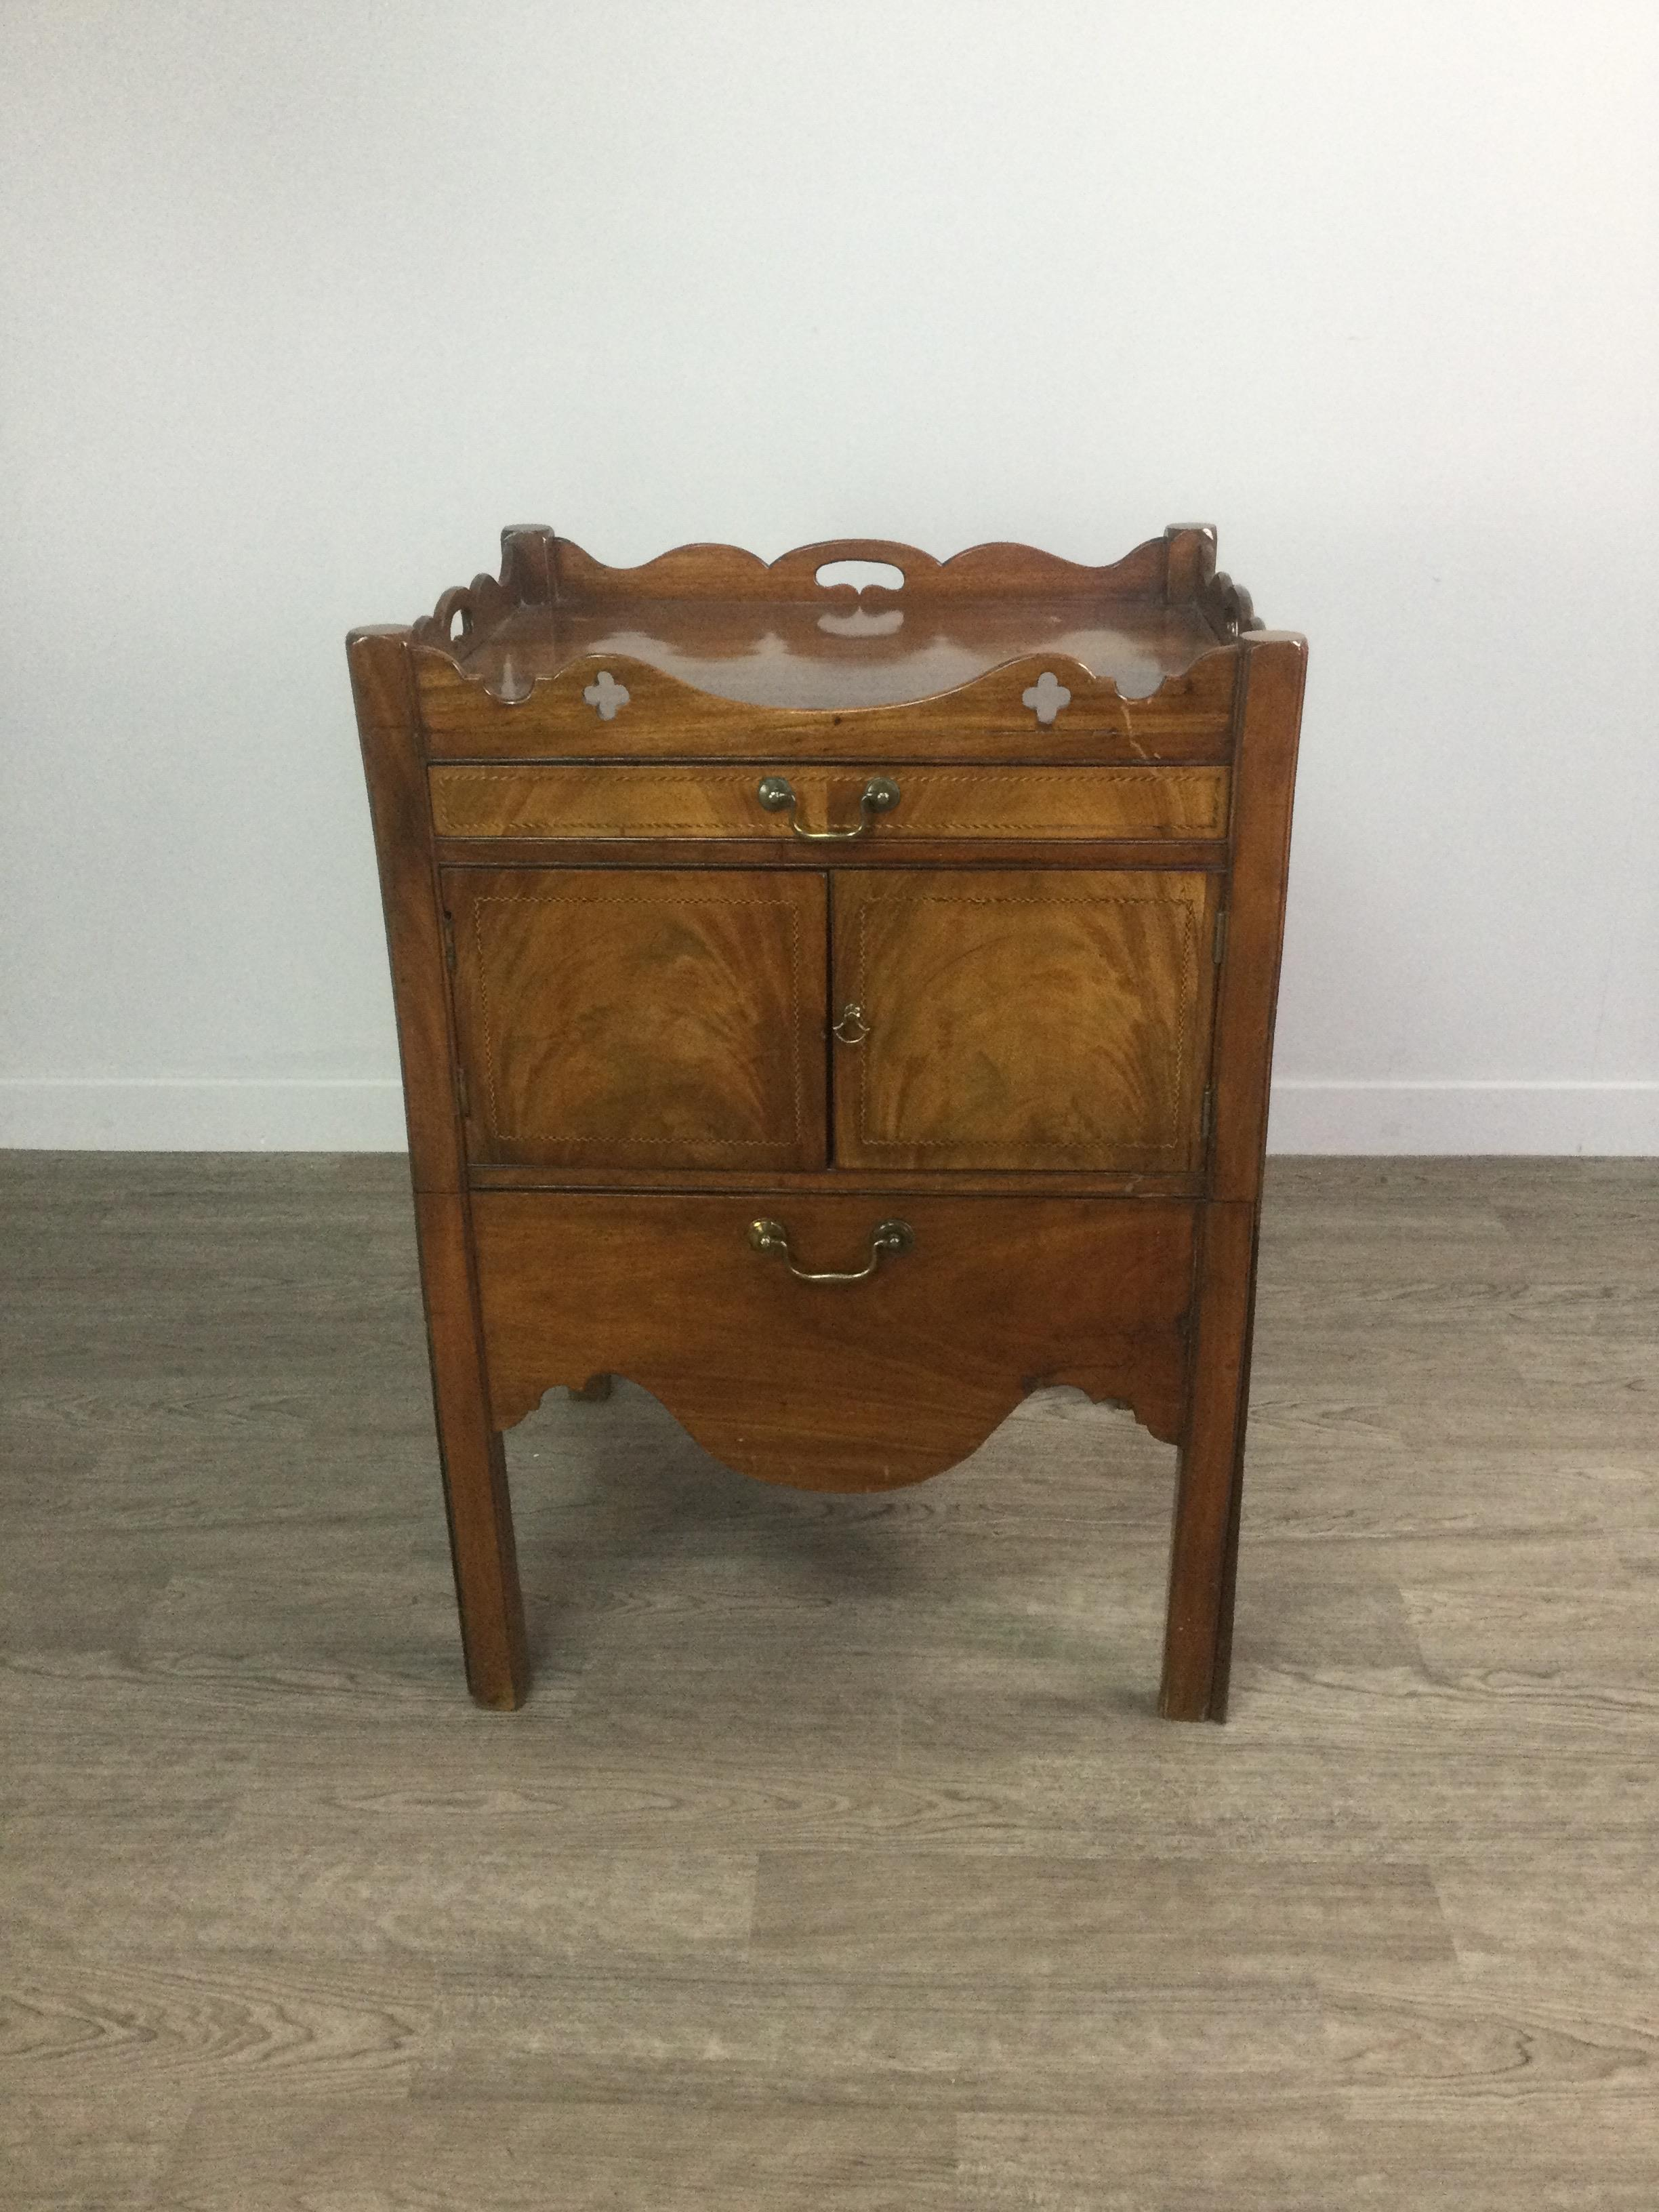 A 19TH CENTURY MAHOGANY TRAY TOP BEDSIDE COMMODE - Image 4 of 4